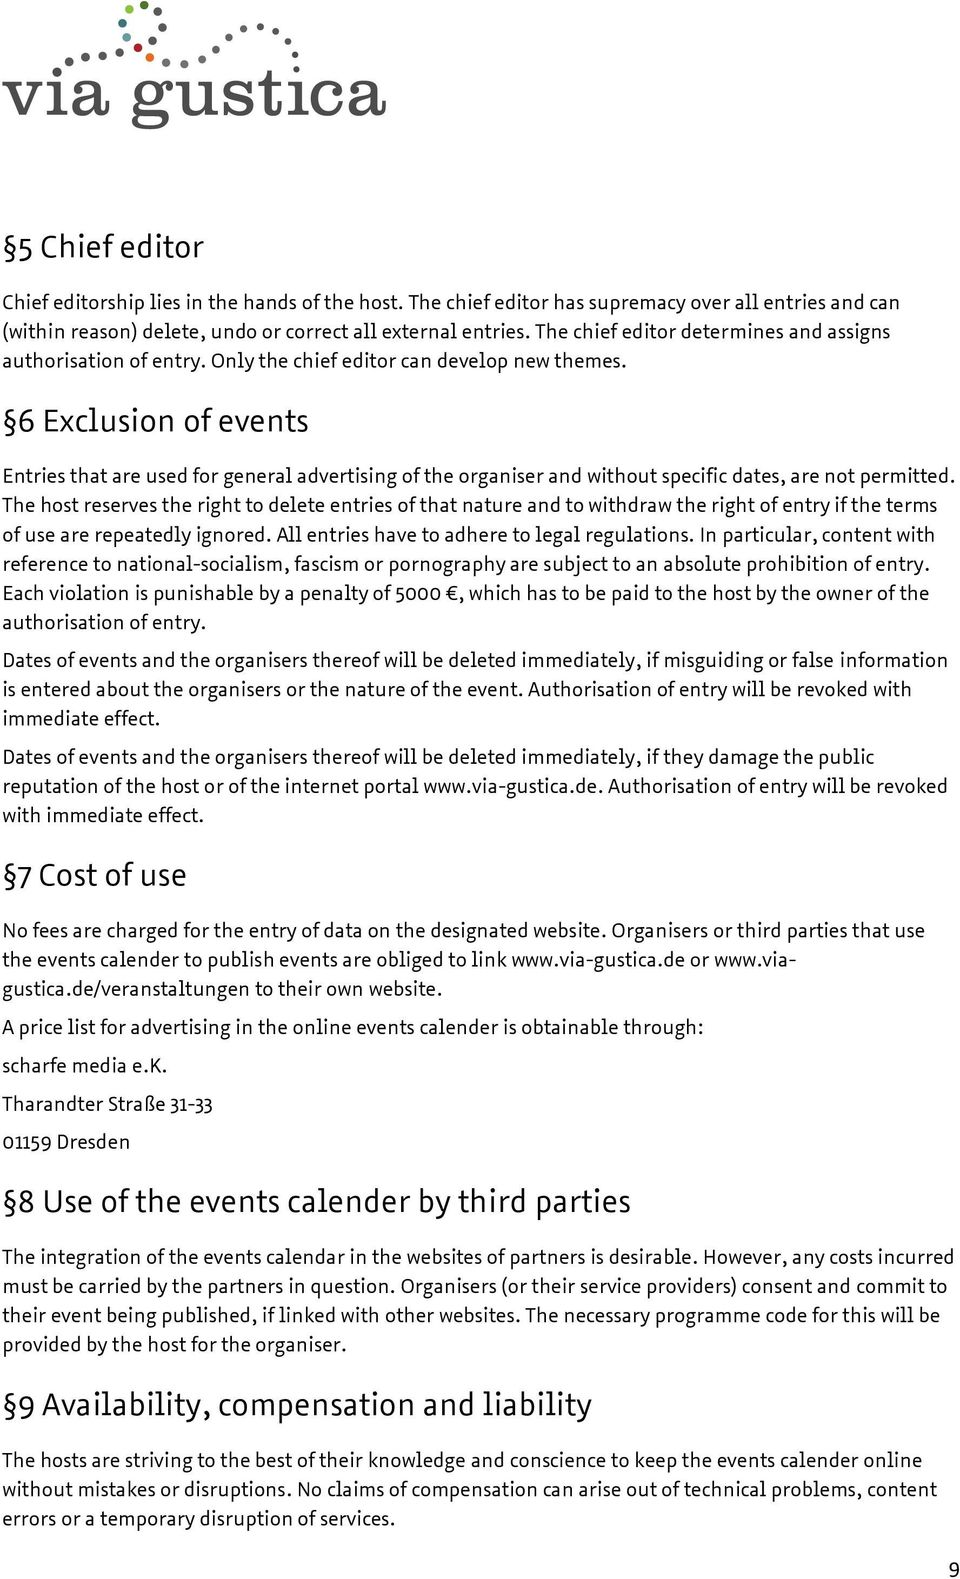 6 Exclusion of events Entries that are used for general advertising of the organiser and without specific dates, are not permitted.